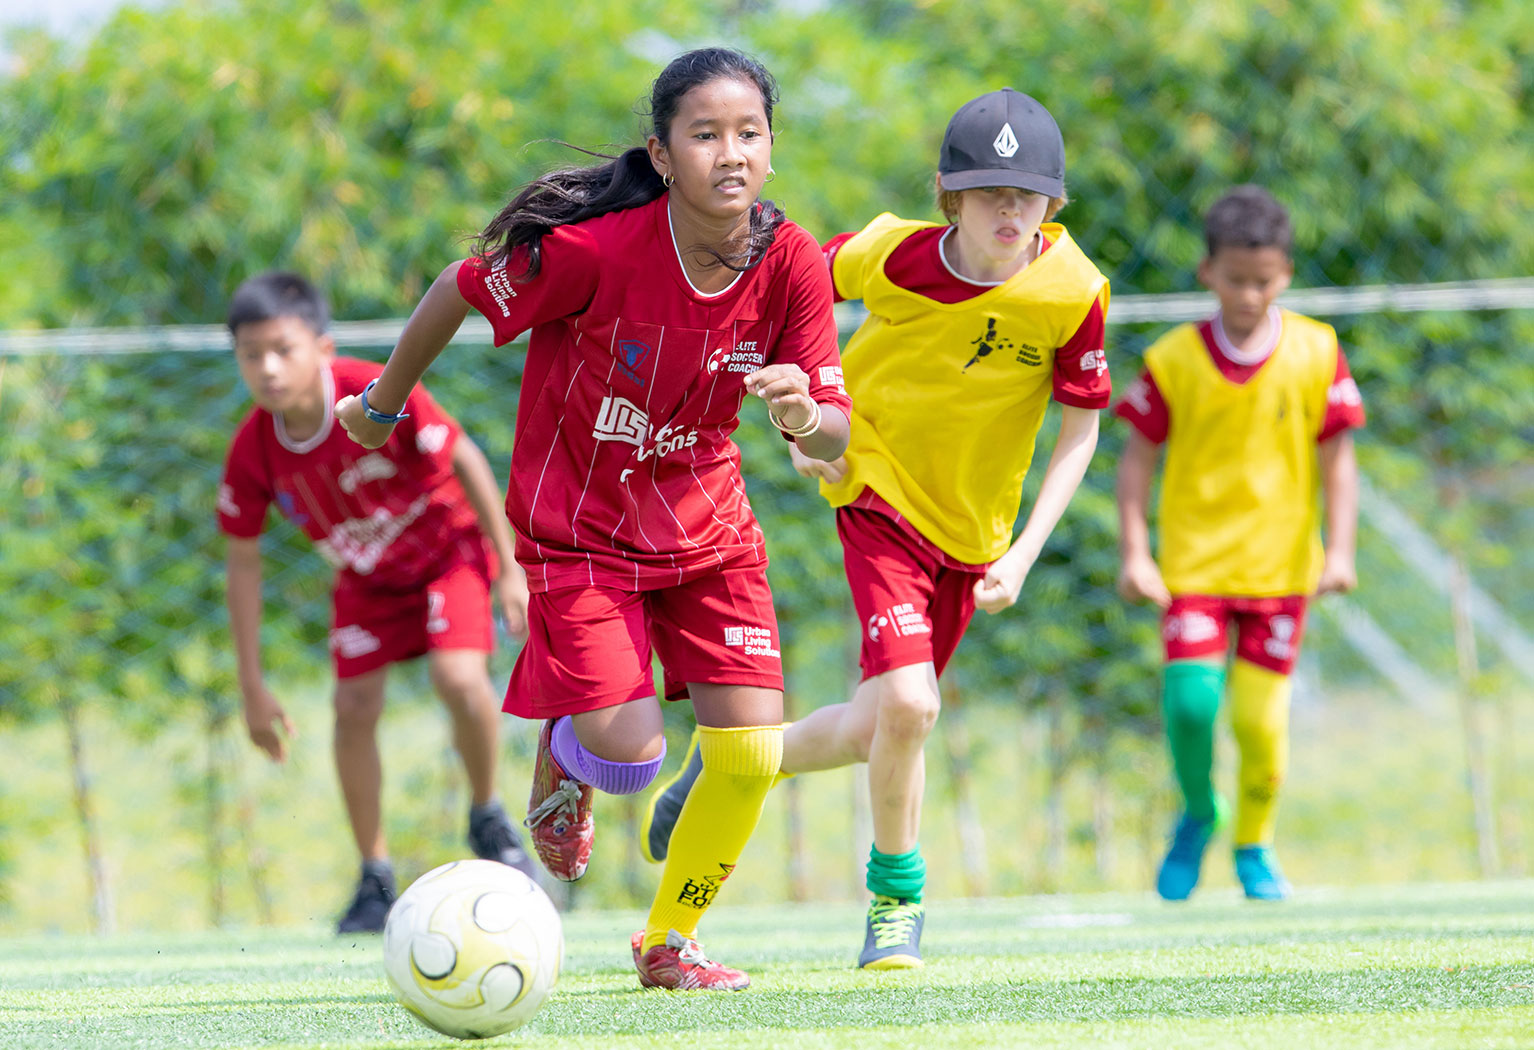 elite-soccer-coaching-football-school-cambodia-11-15